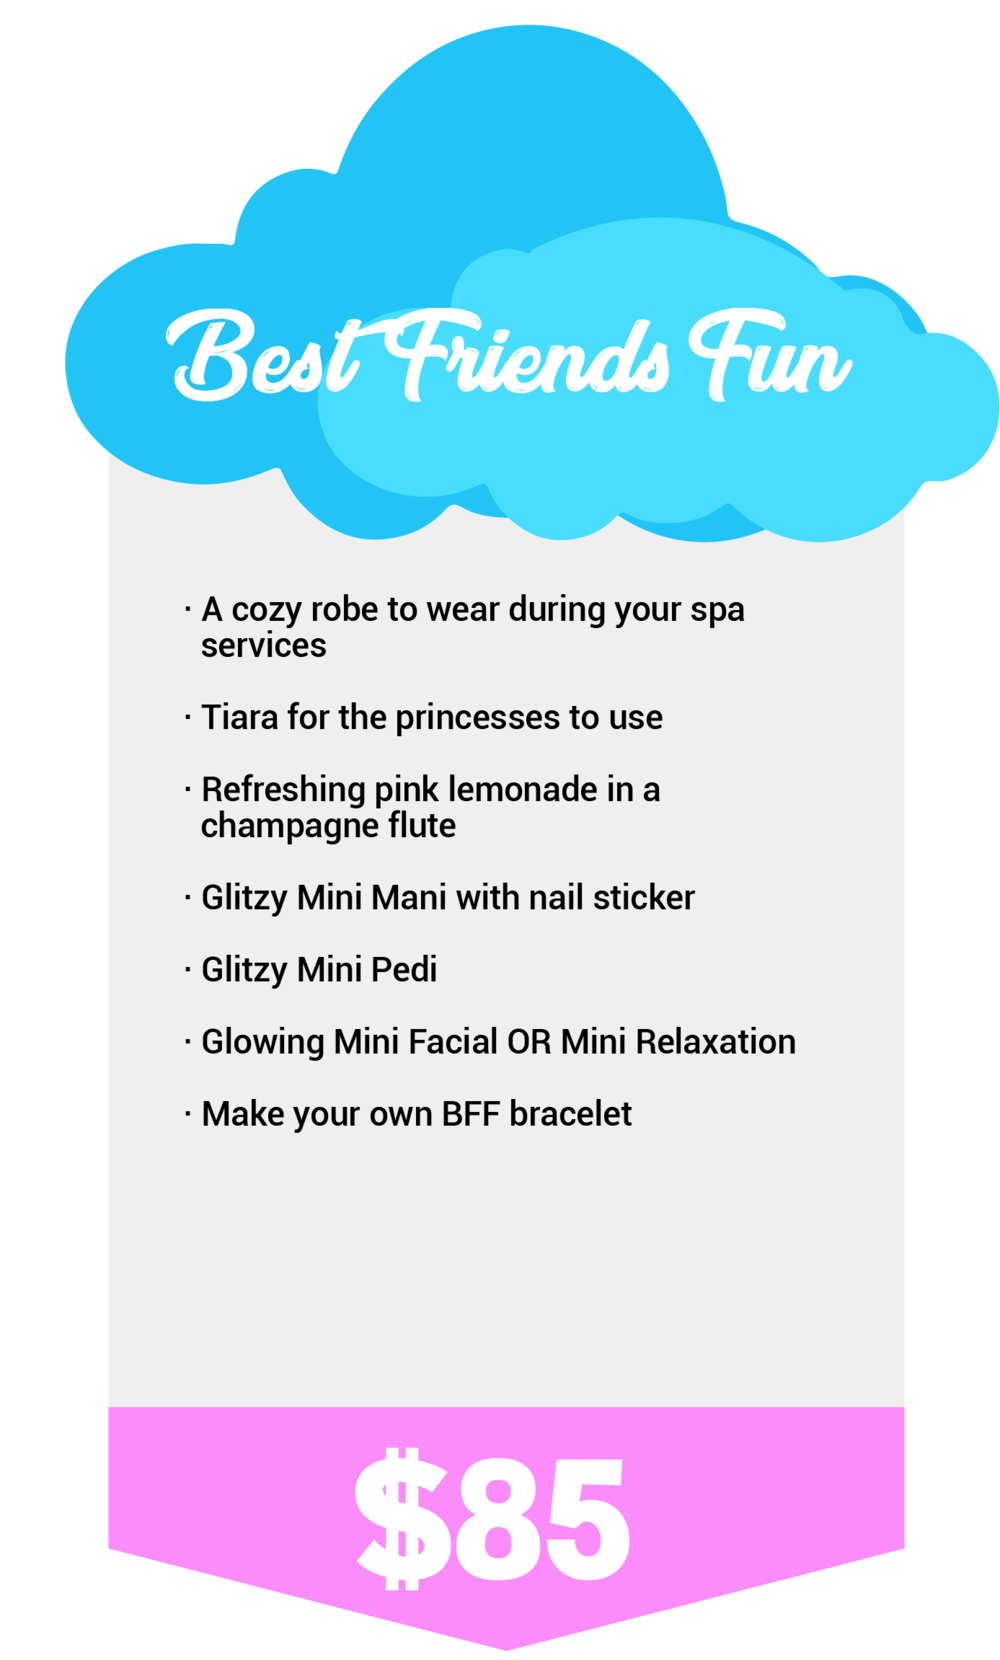 best Friend Fun, Kid spa, kids spa